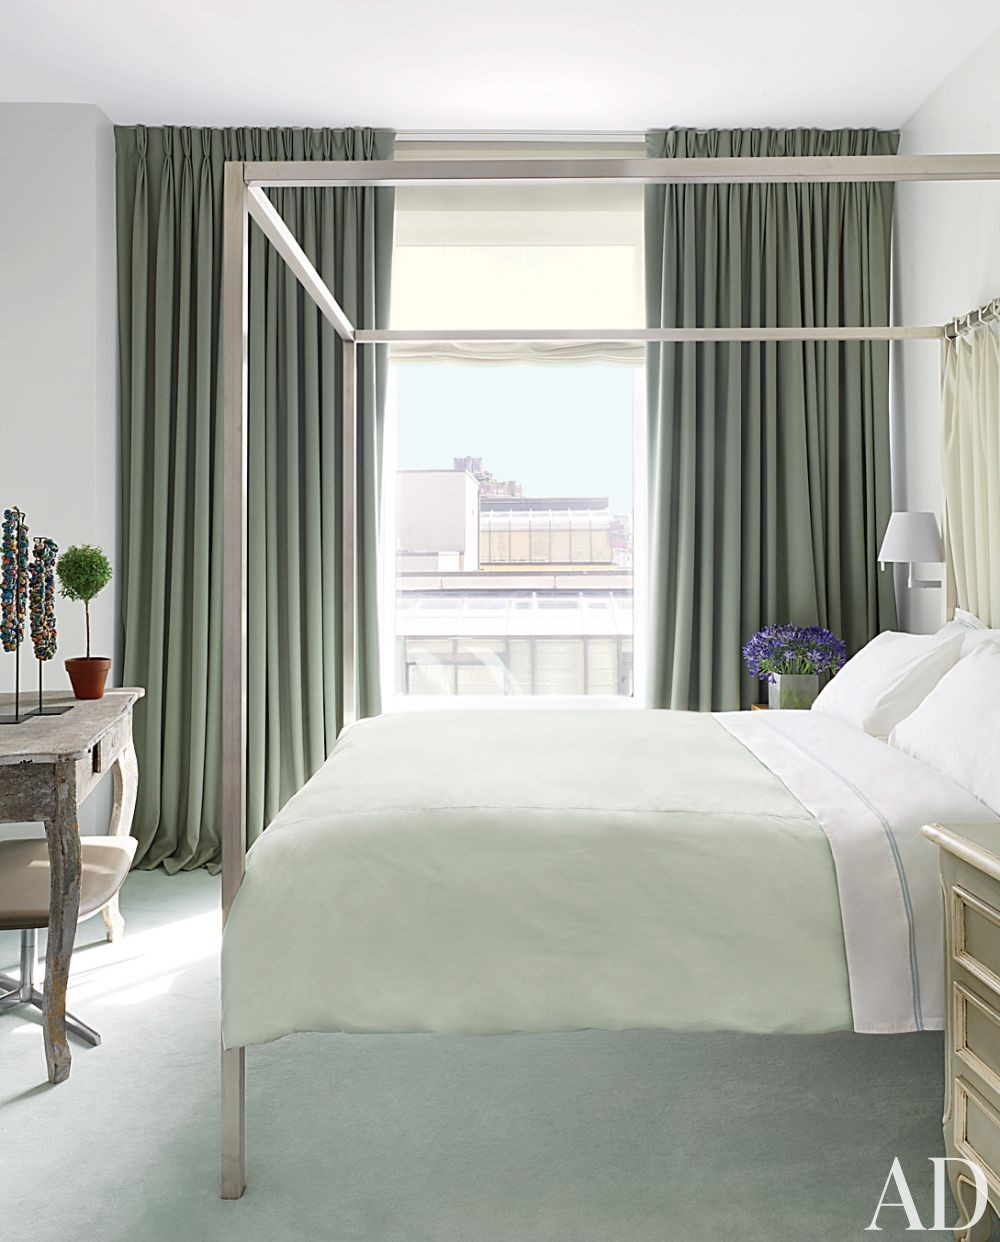 Modern Bedroom by Vicente Wolf Associates Inc. in New York, New York